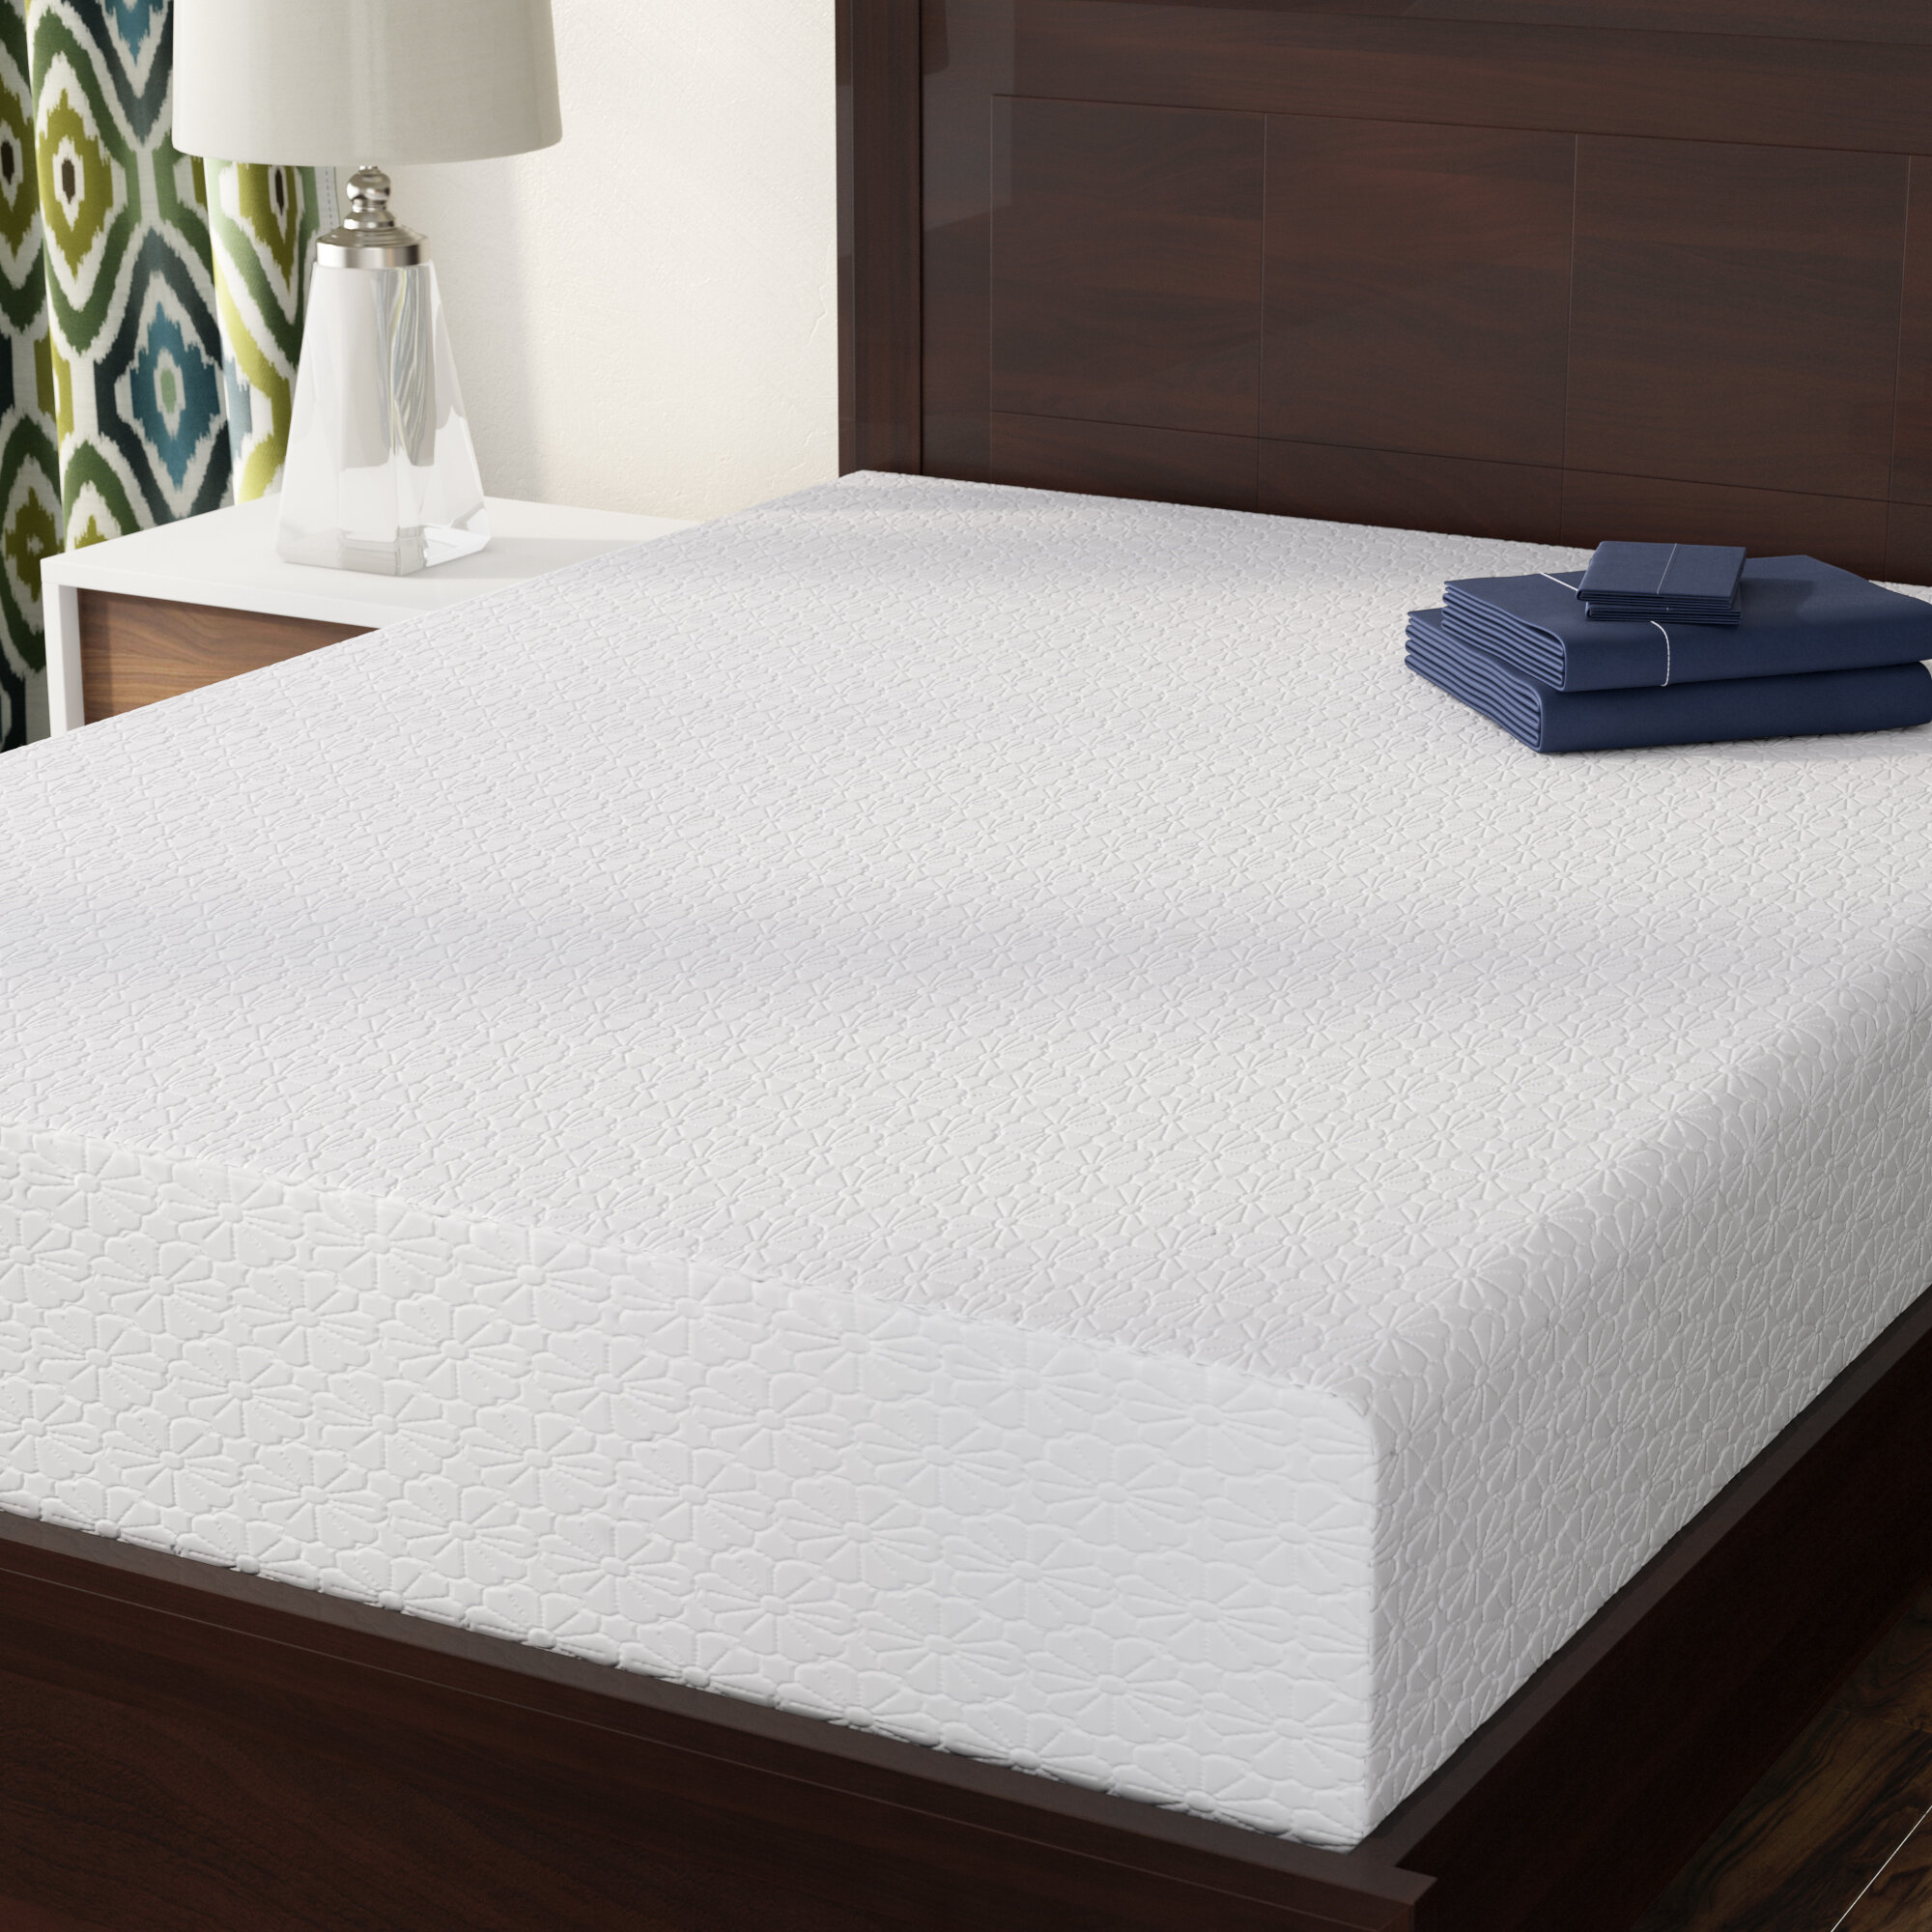 pcok previous h co mattress cm memory foam mattresses